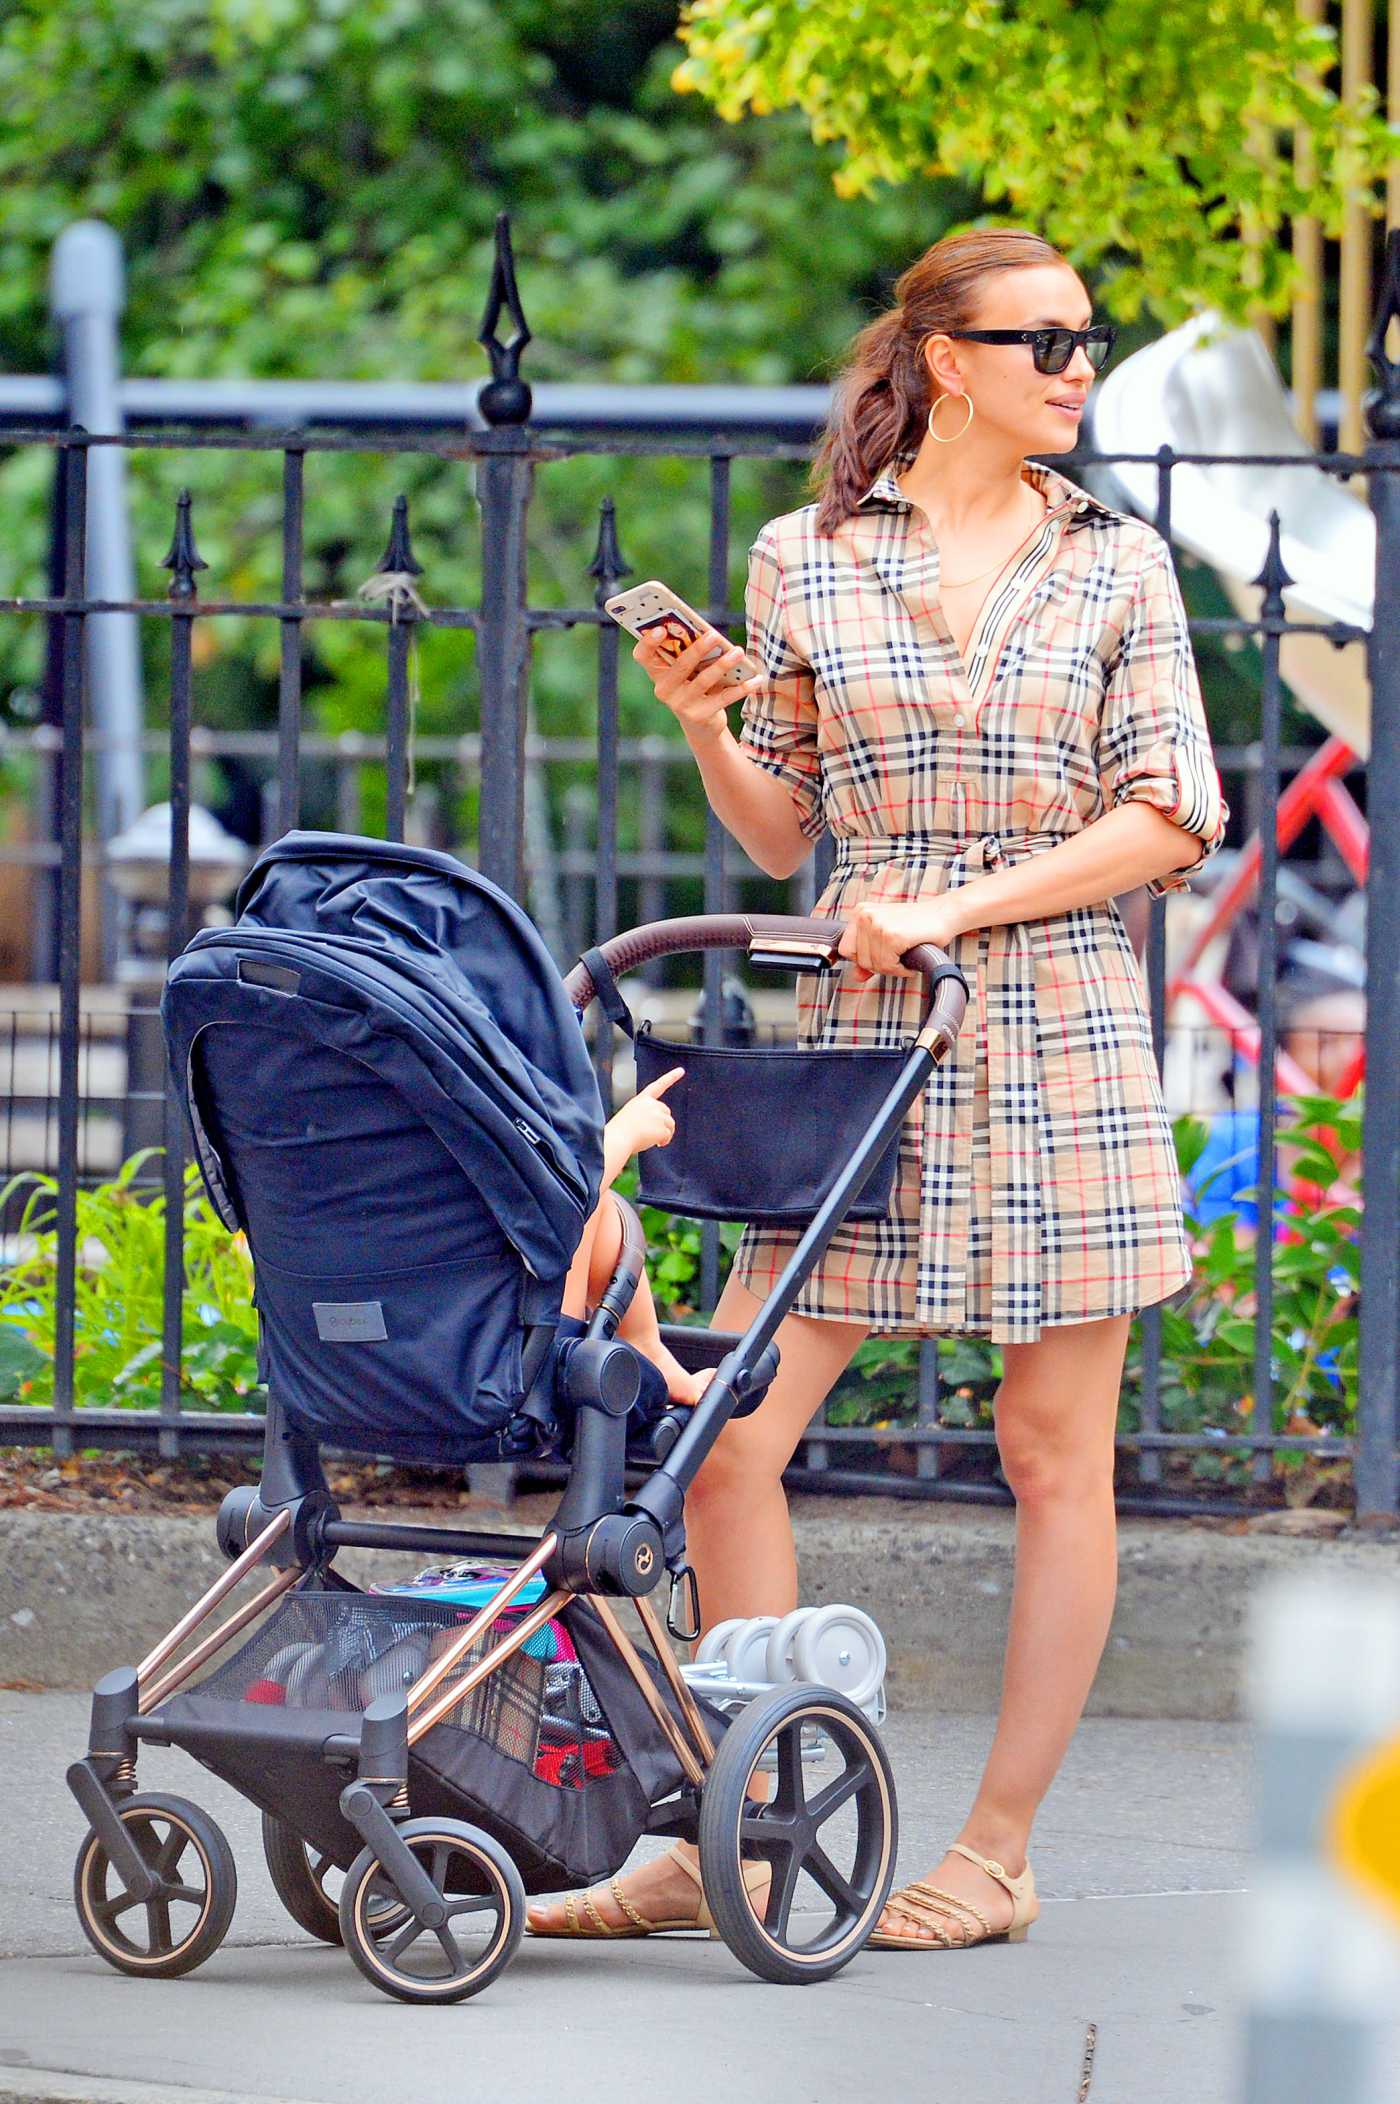 Irina Shayk in a Plaid Dress Was Seen with Her Daughter Lea in New York City 06/17/2019